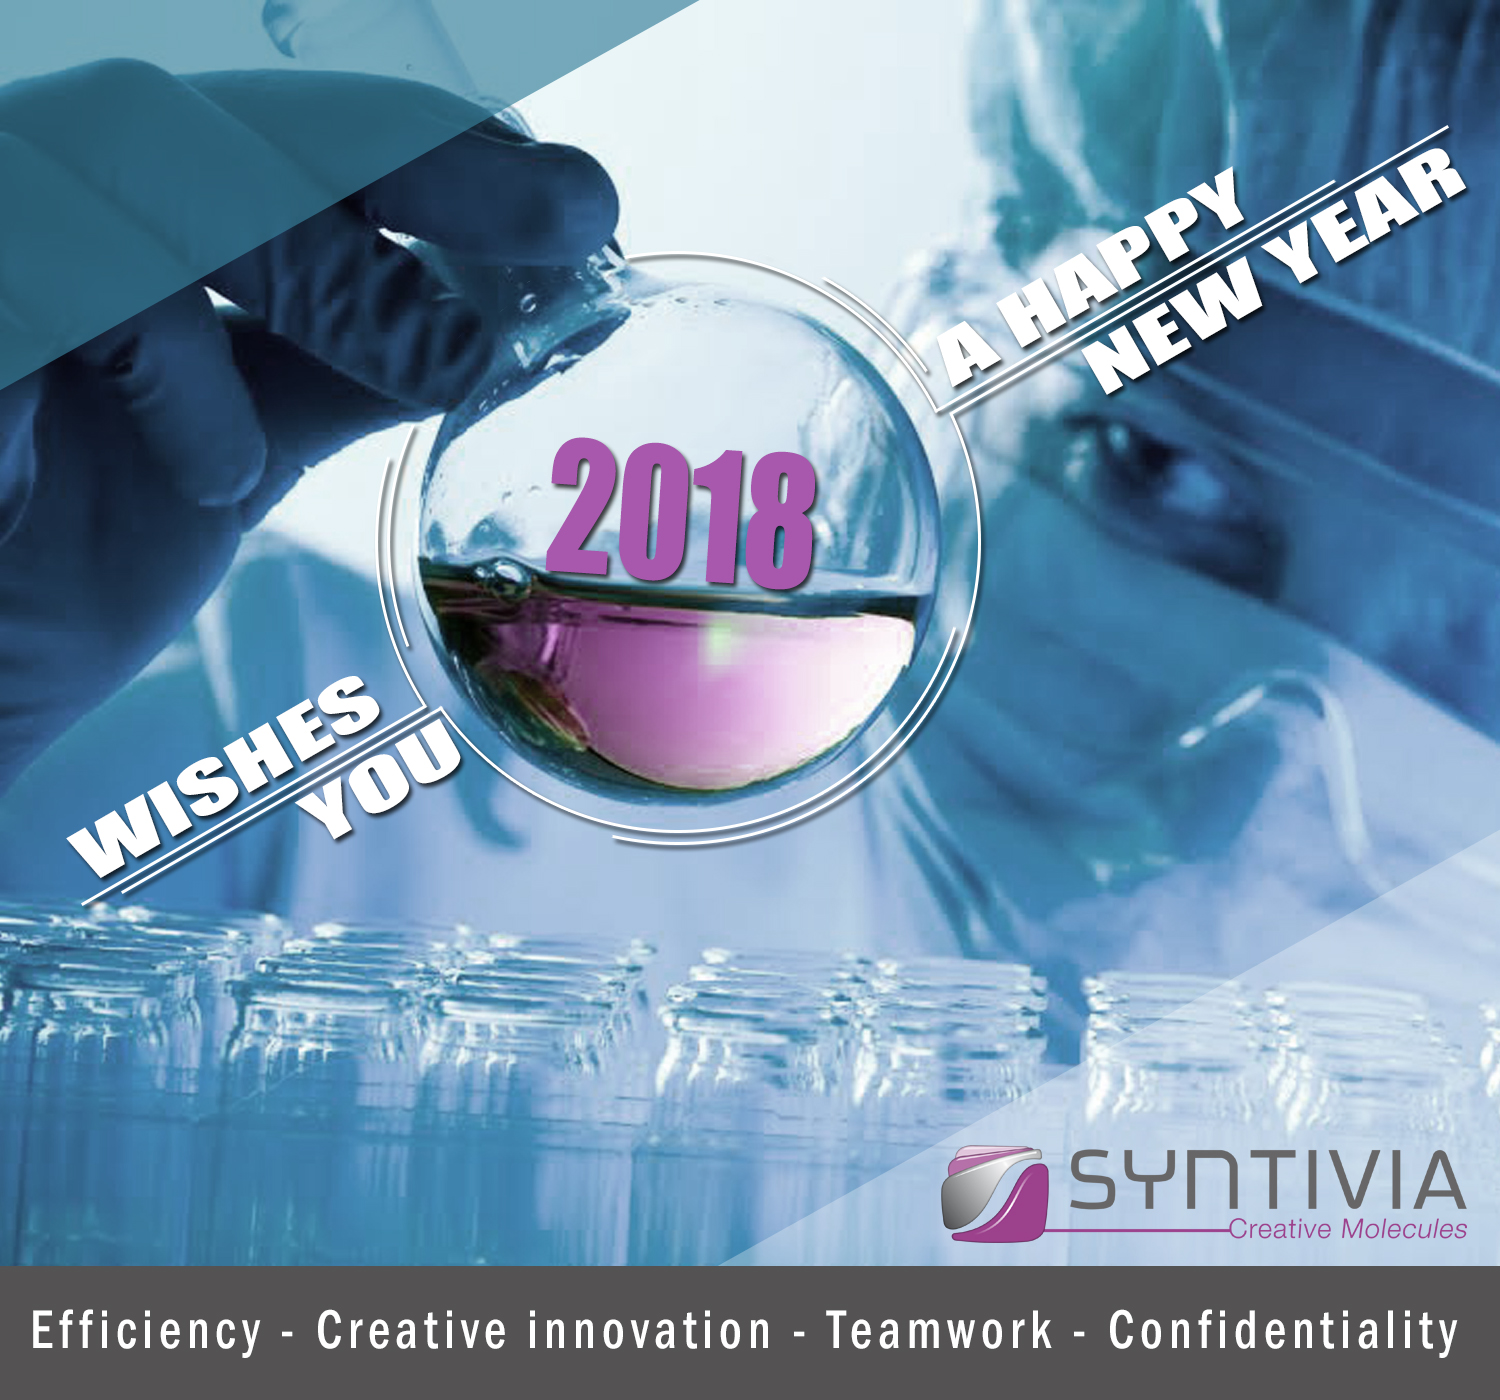 syntivia wishes you a happy new year 2018